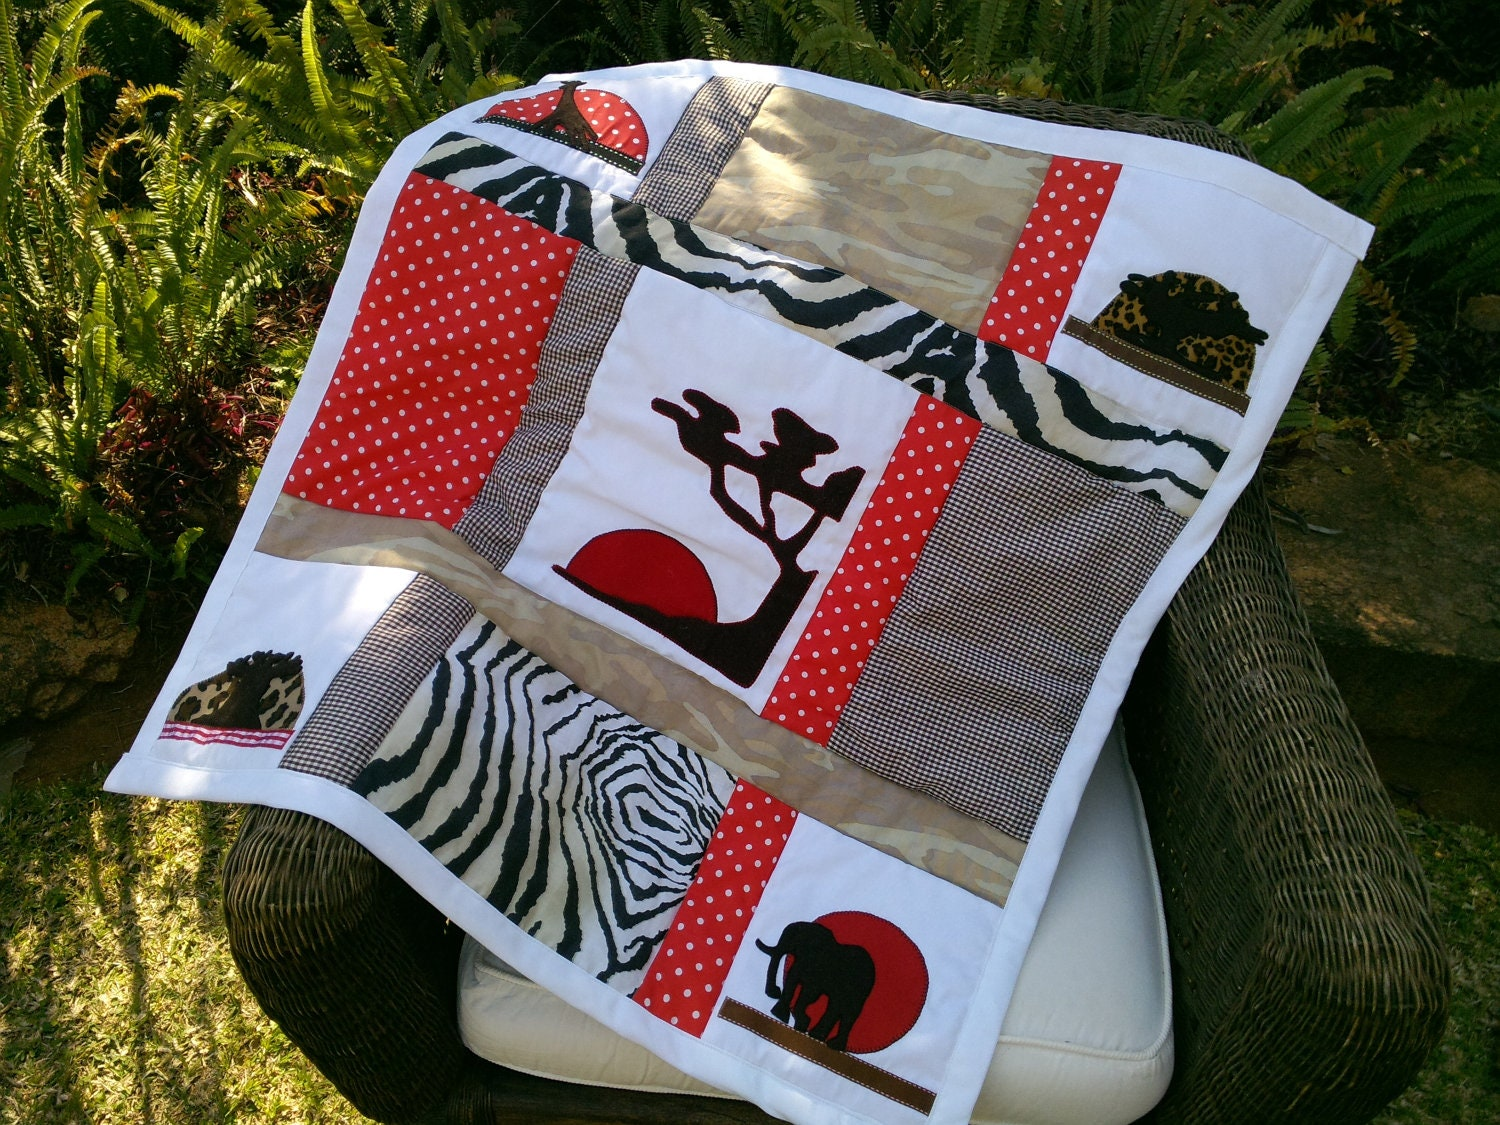 Handmade Quilt for Baby Bed or Wall Hanging, African Silhouette Design